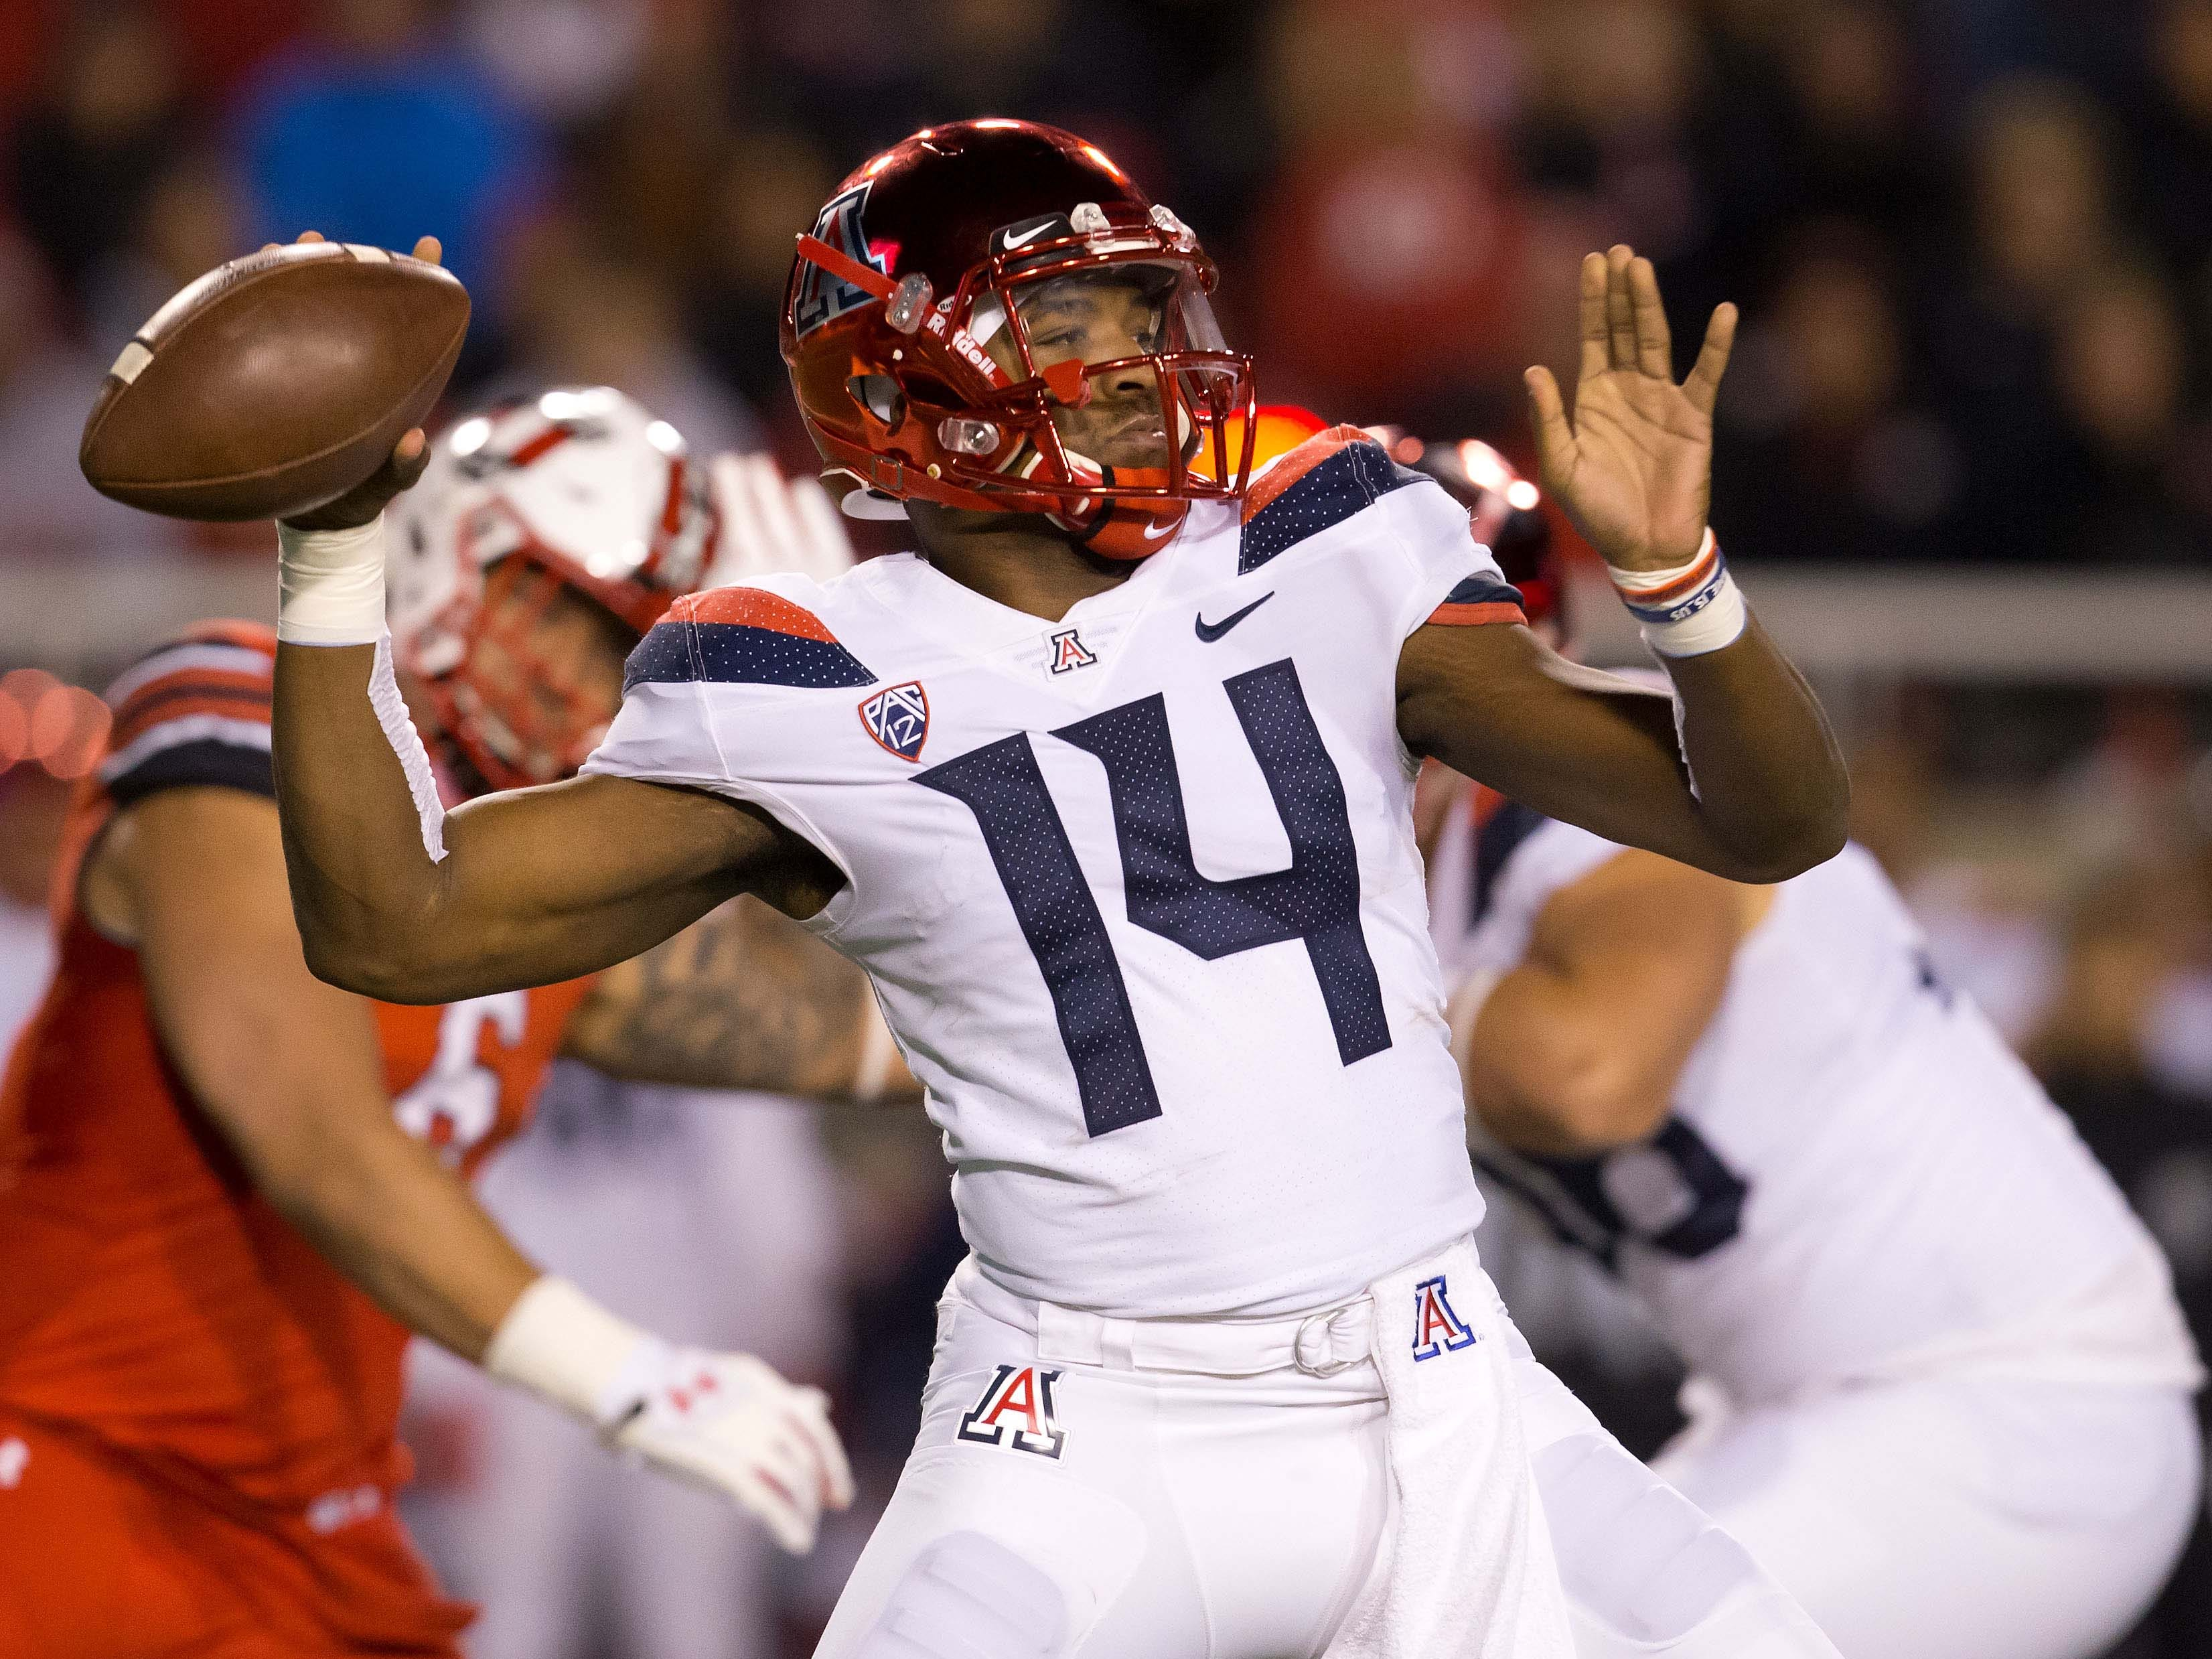 Oct 12, 2018; Salt Lake City, UT, USA; Arizona Wildcats quarterback Khalil Tate (14) passes the ball during the first quarter against the Utah Utes at Rice-Eccles Stadium.